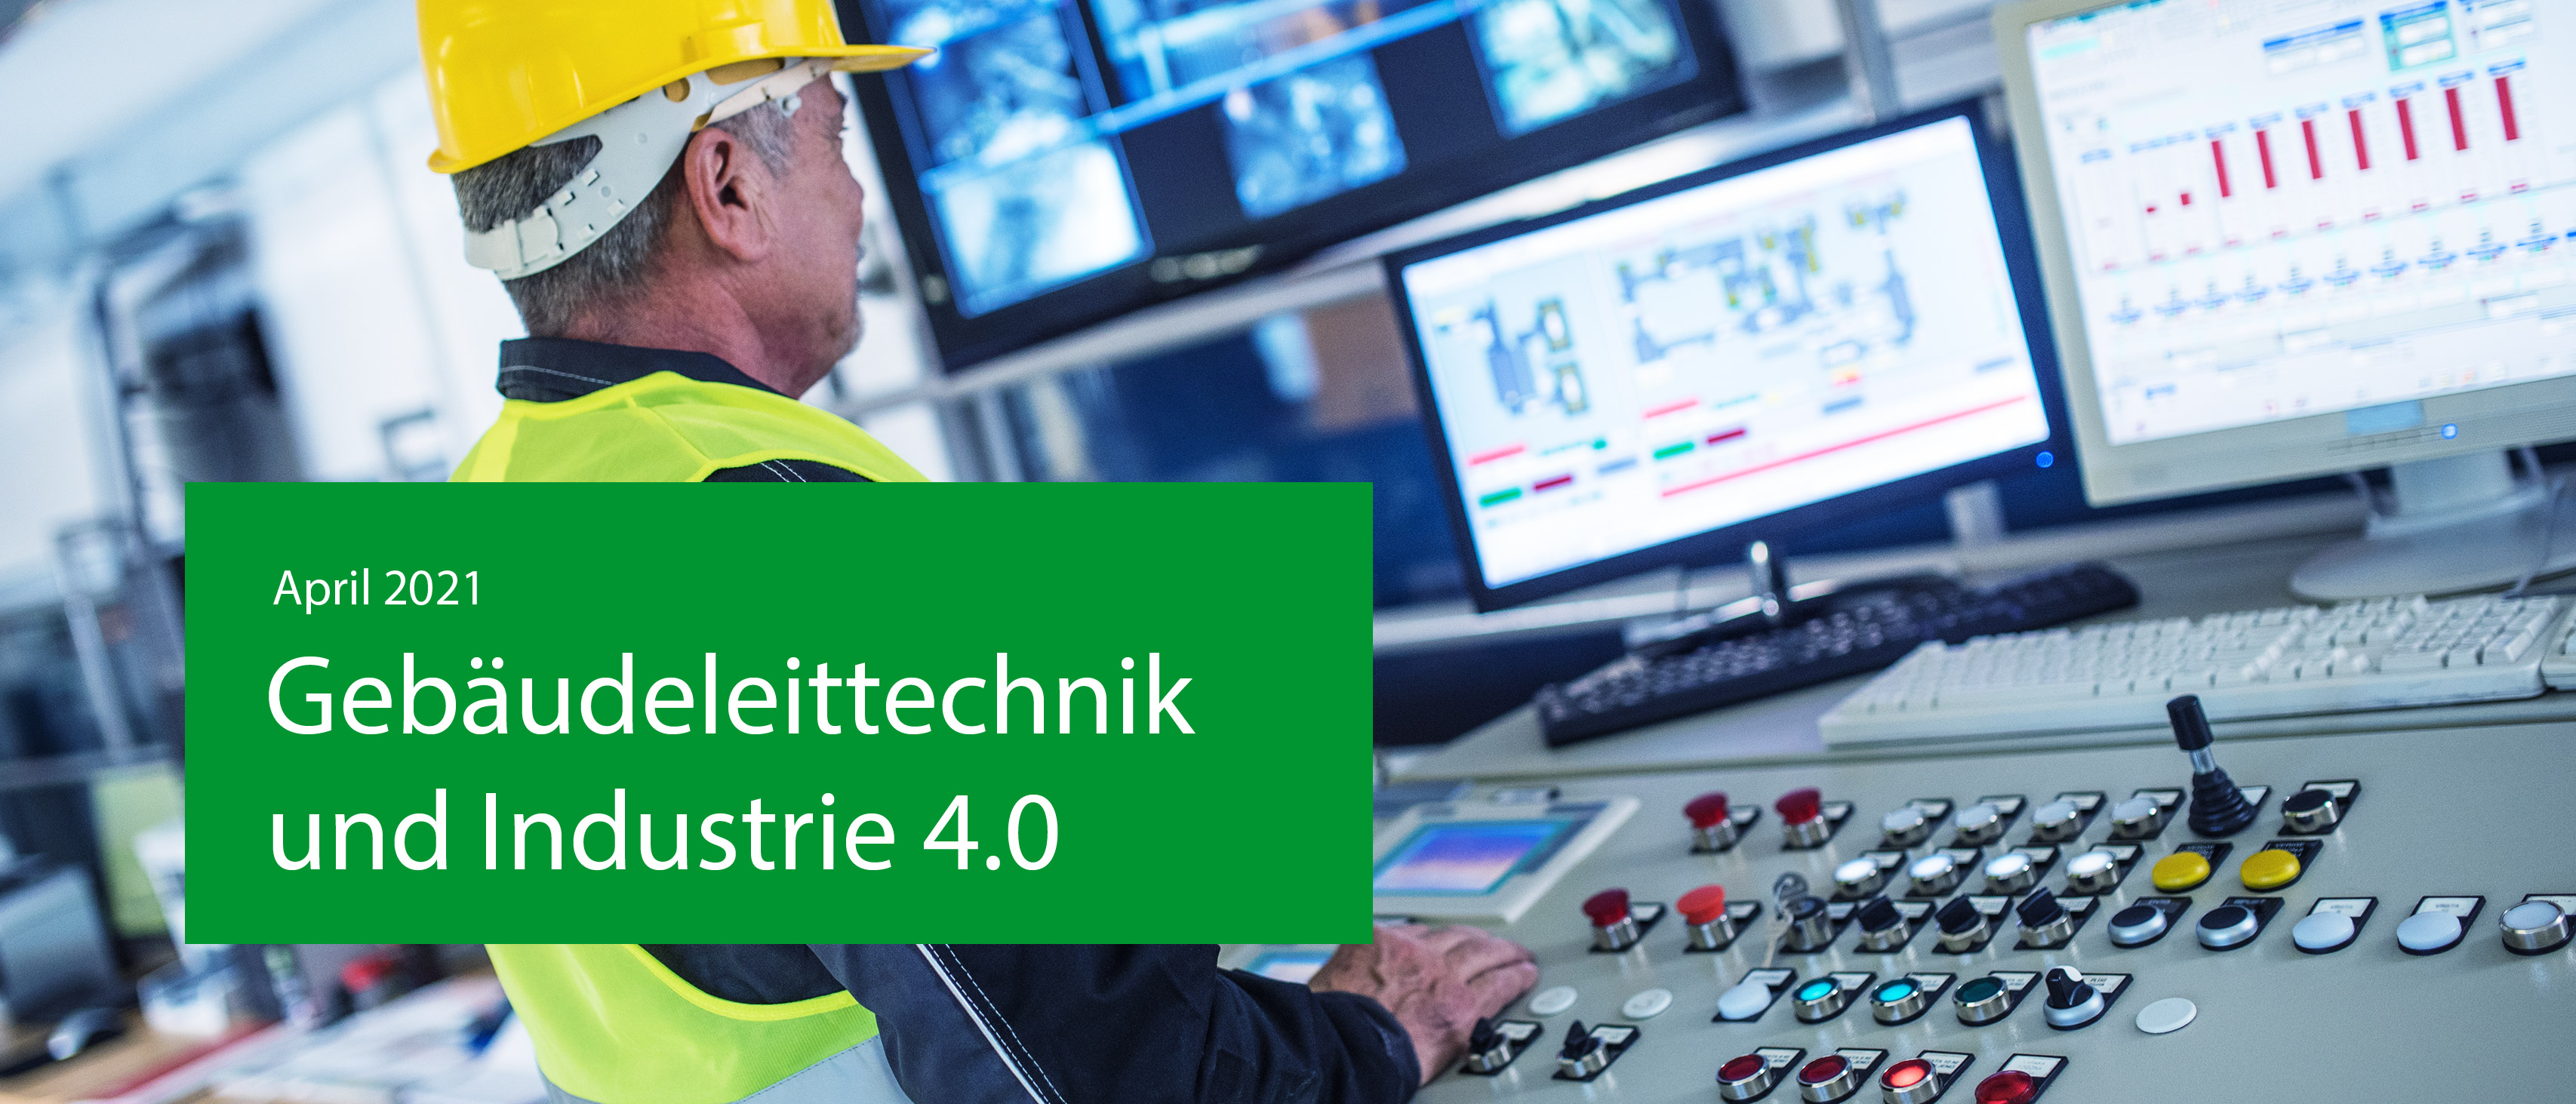 Header image which shows a laboratory and a green box with a headline: April 2021, Gebäudeleittechnik und Industrie 4.0